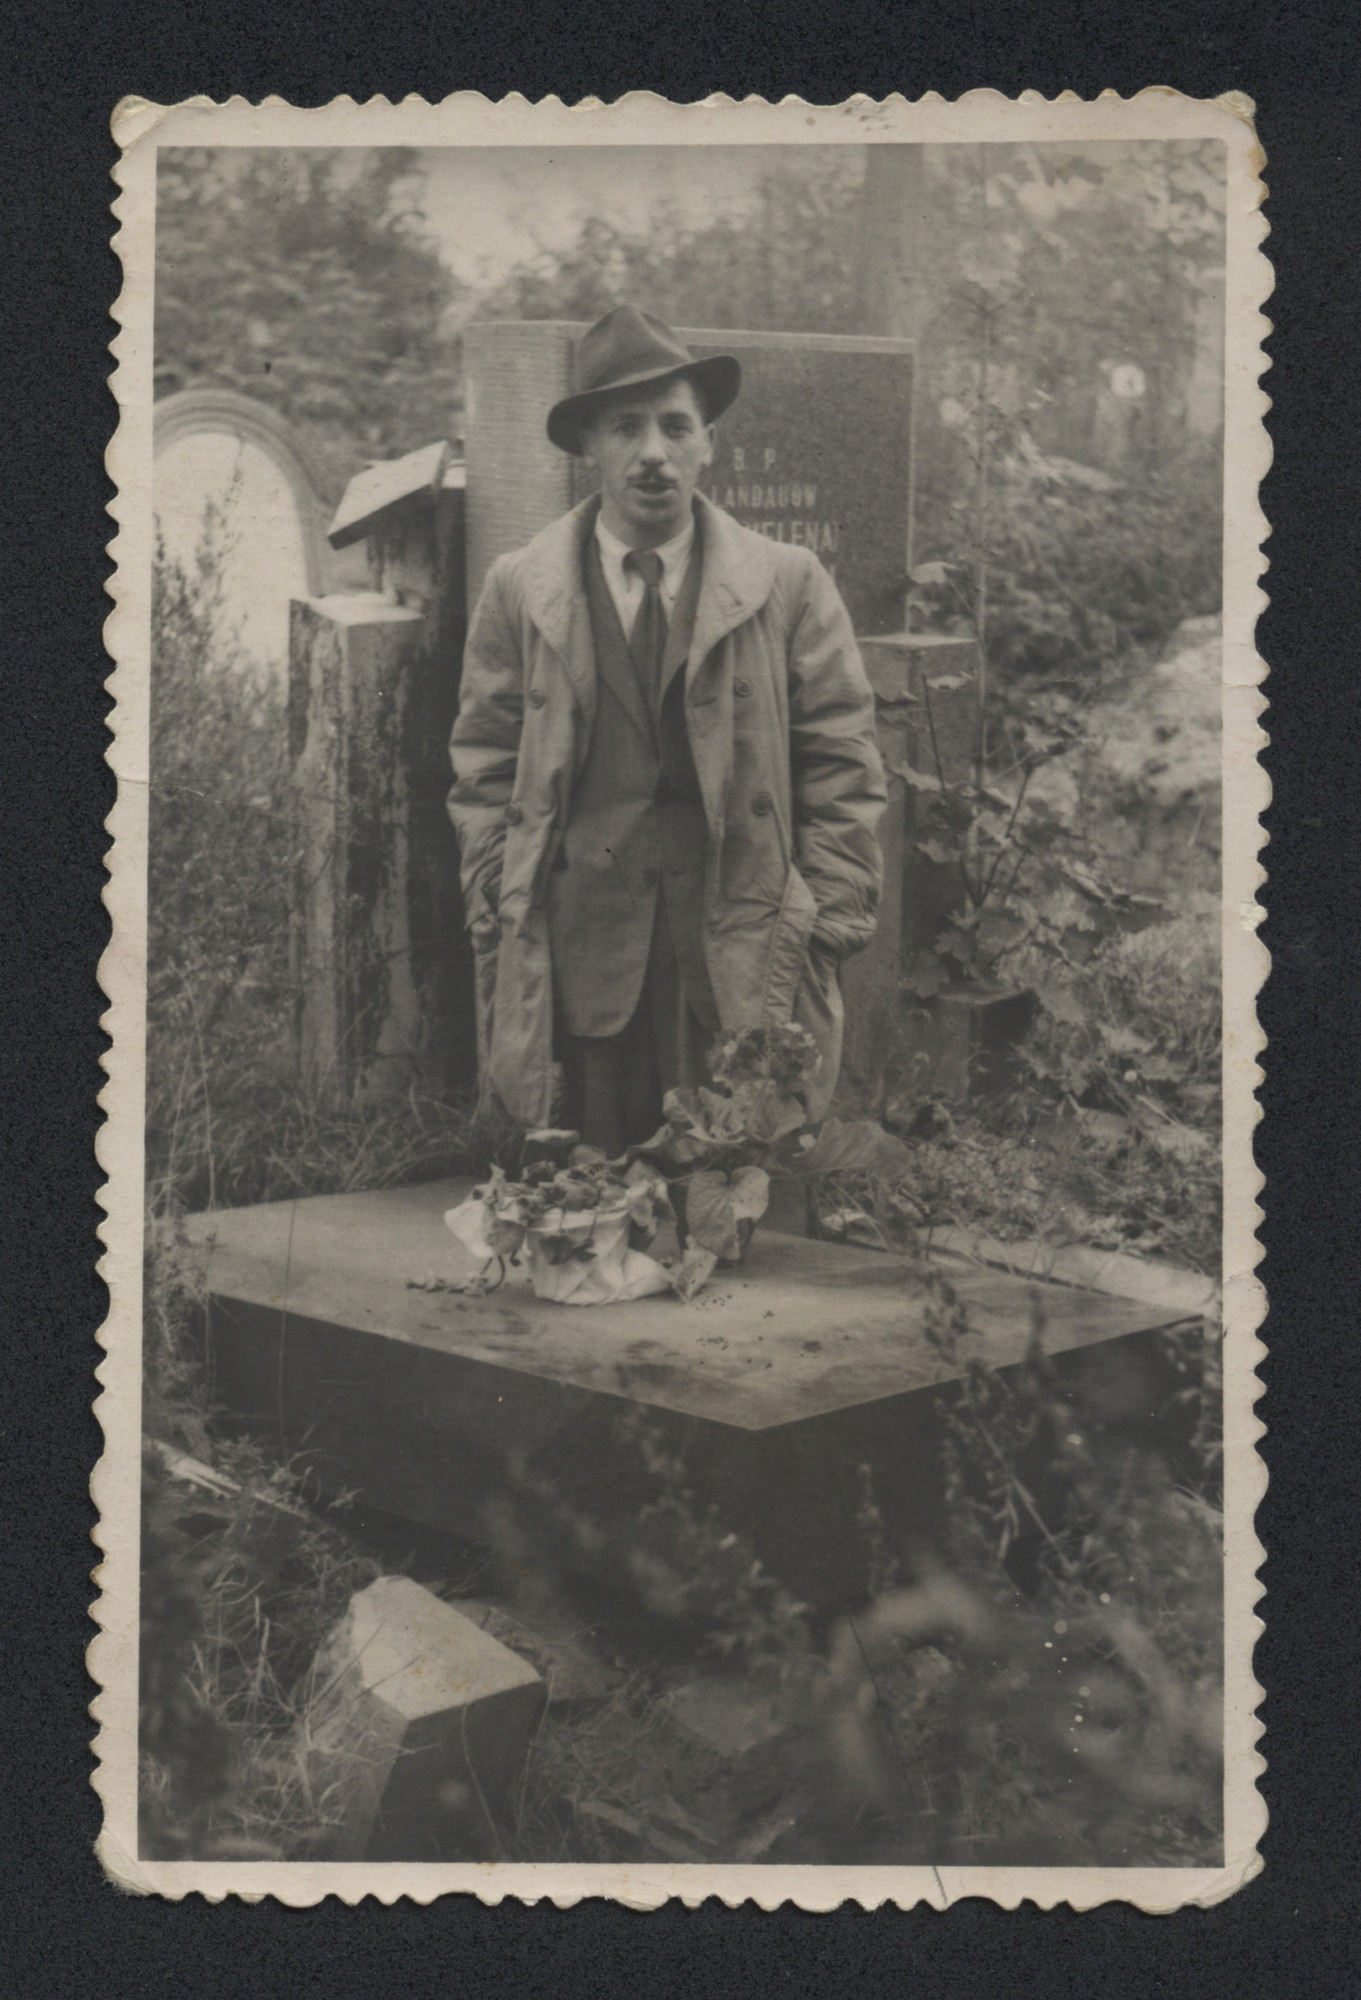 Lazar Ratafia stands next to the toppled gravemarker of his mother after the war.